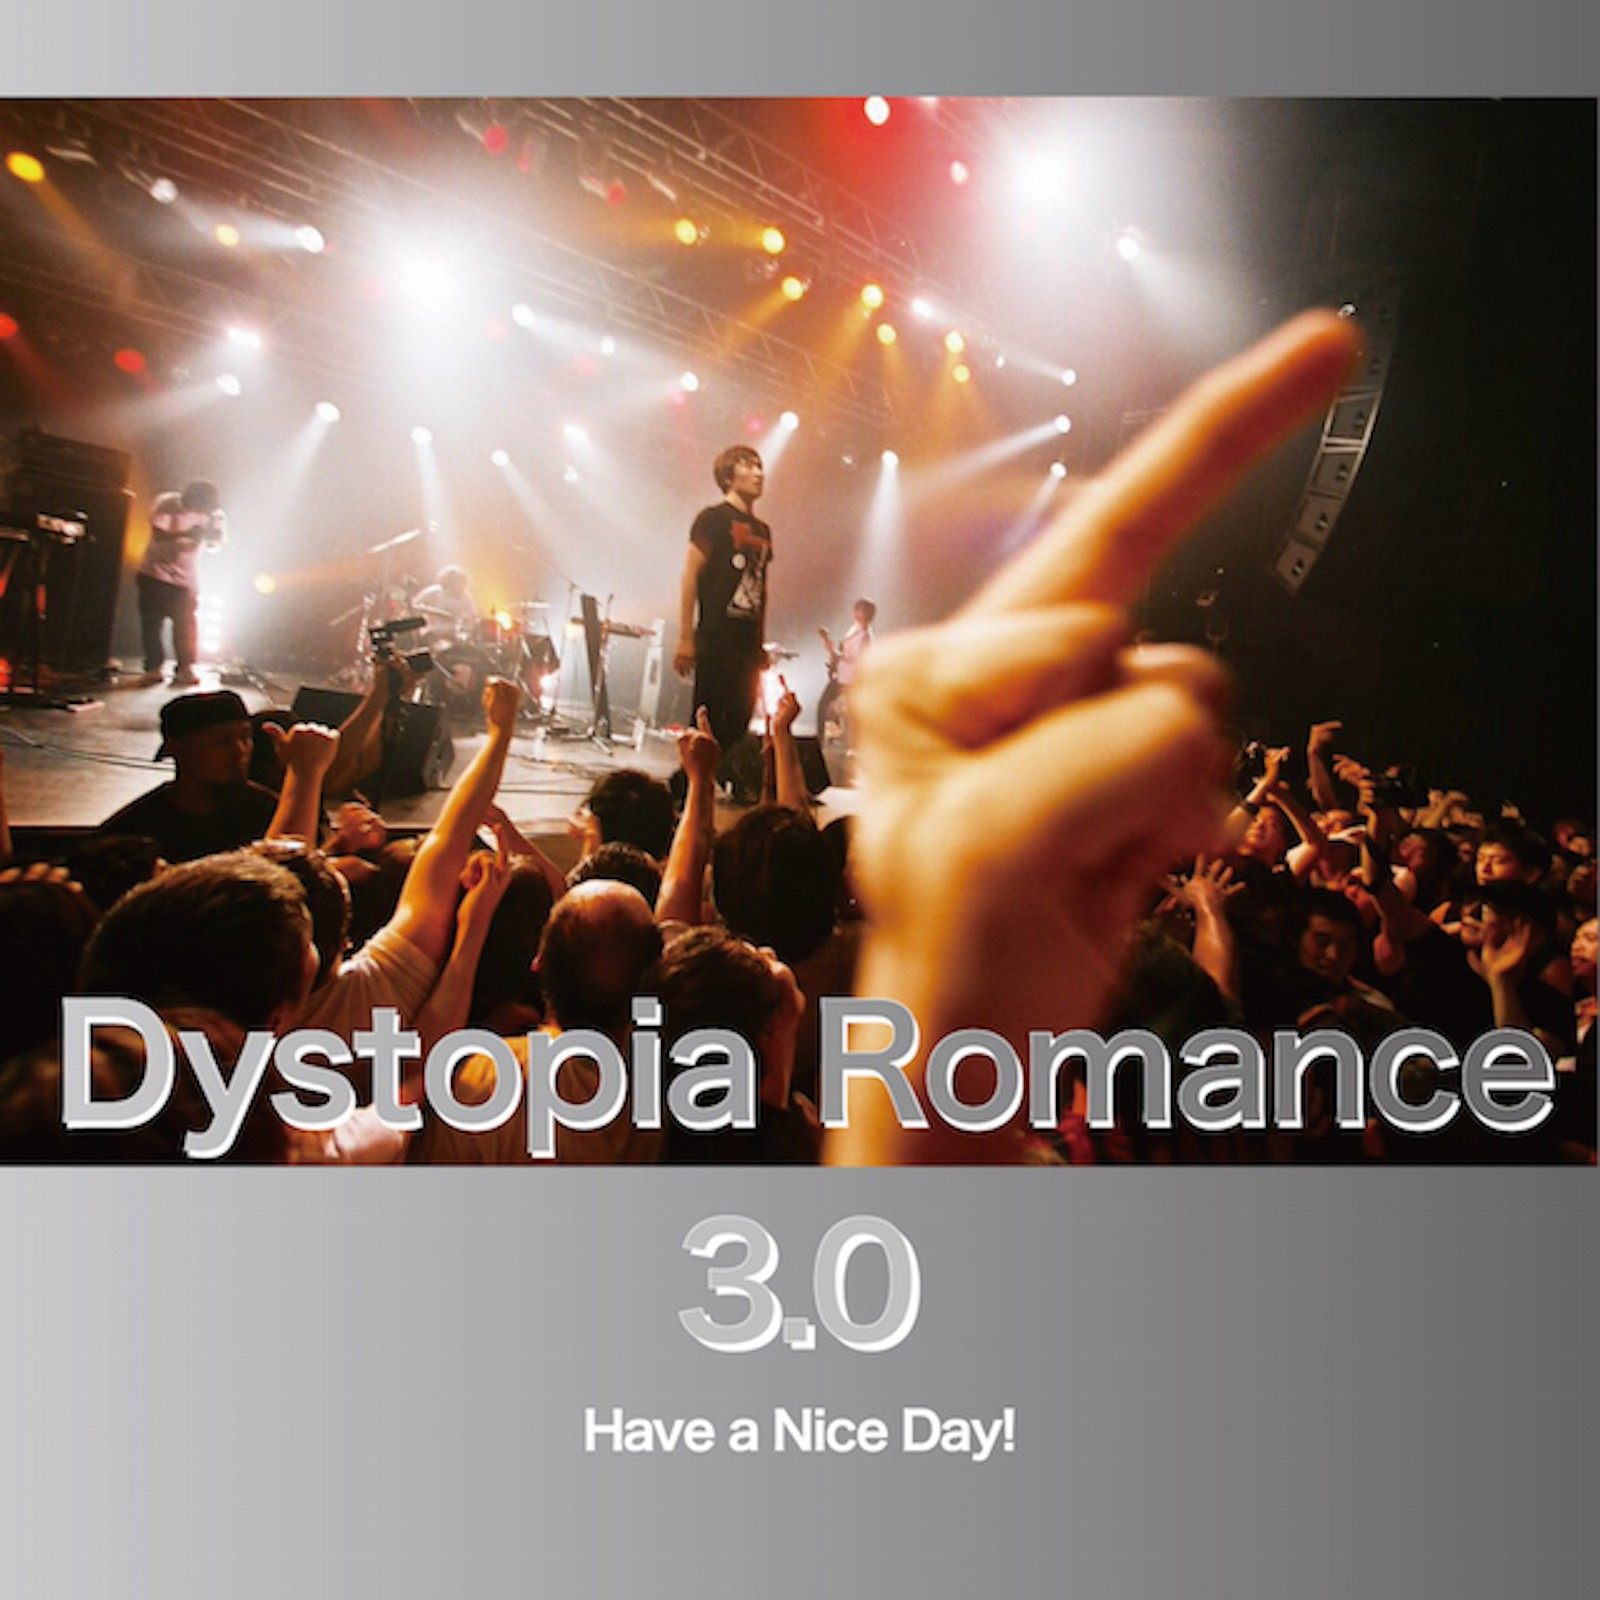 Have a Nice Day! – Dystopia Romance 3.0 [24bit Lossless + MP3 320 / WEB]  [2018.01.12]